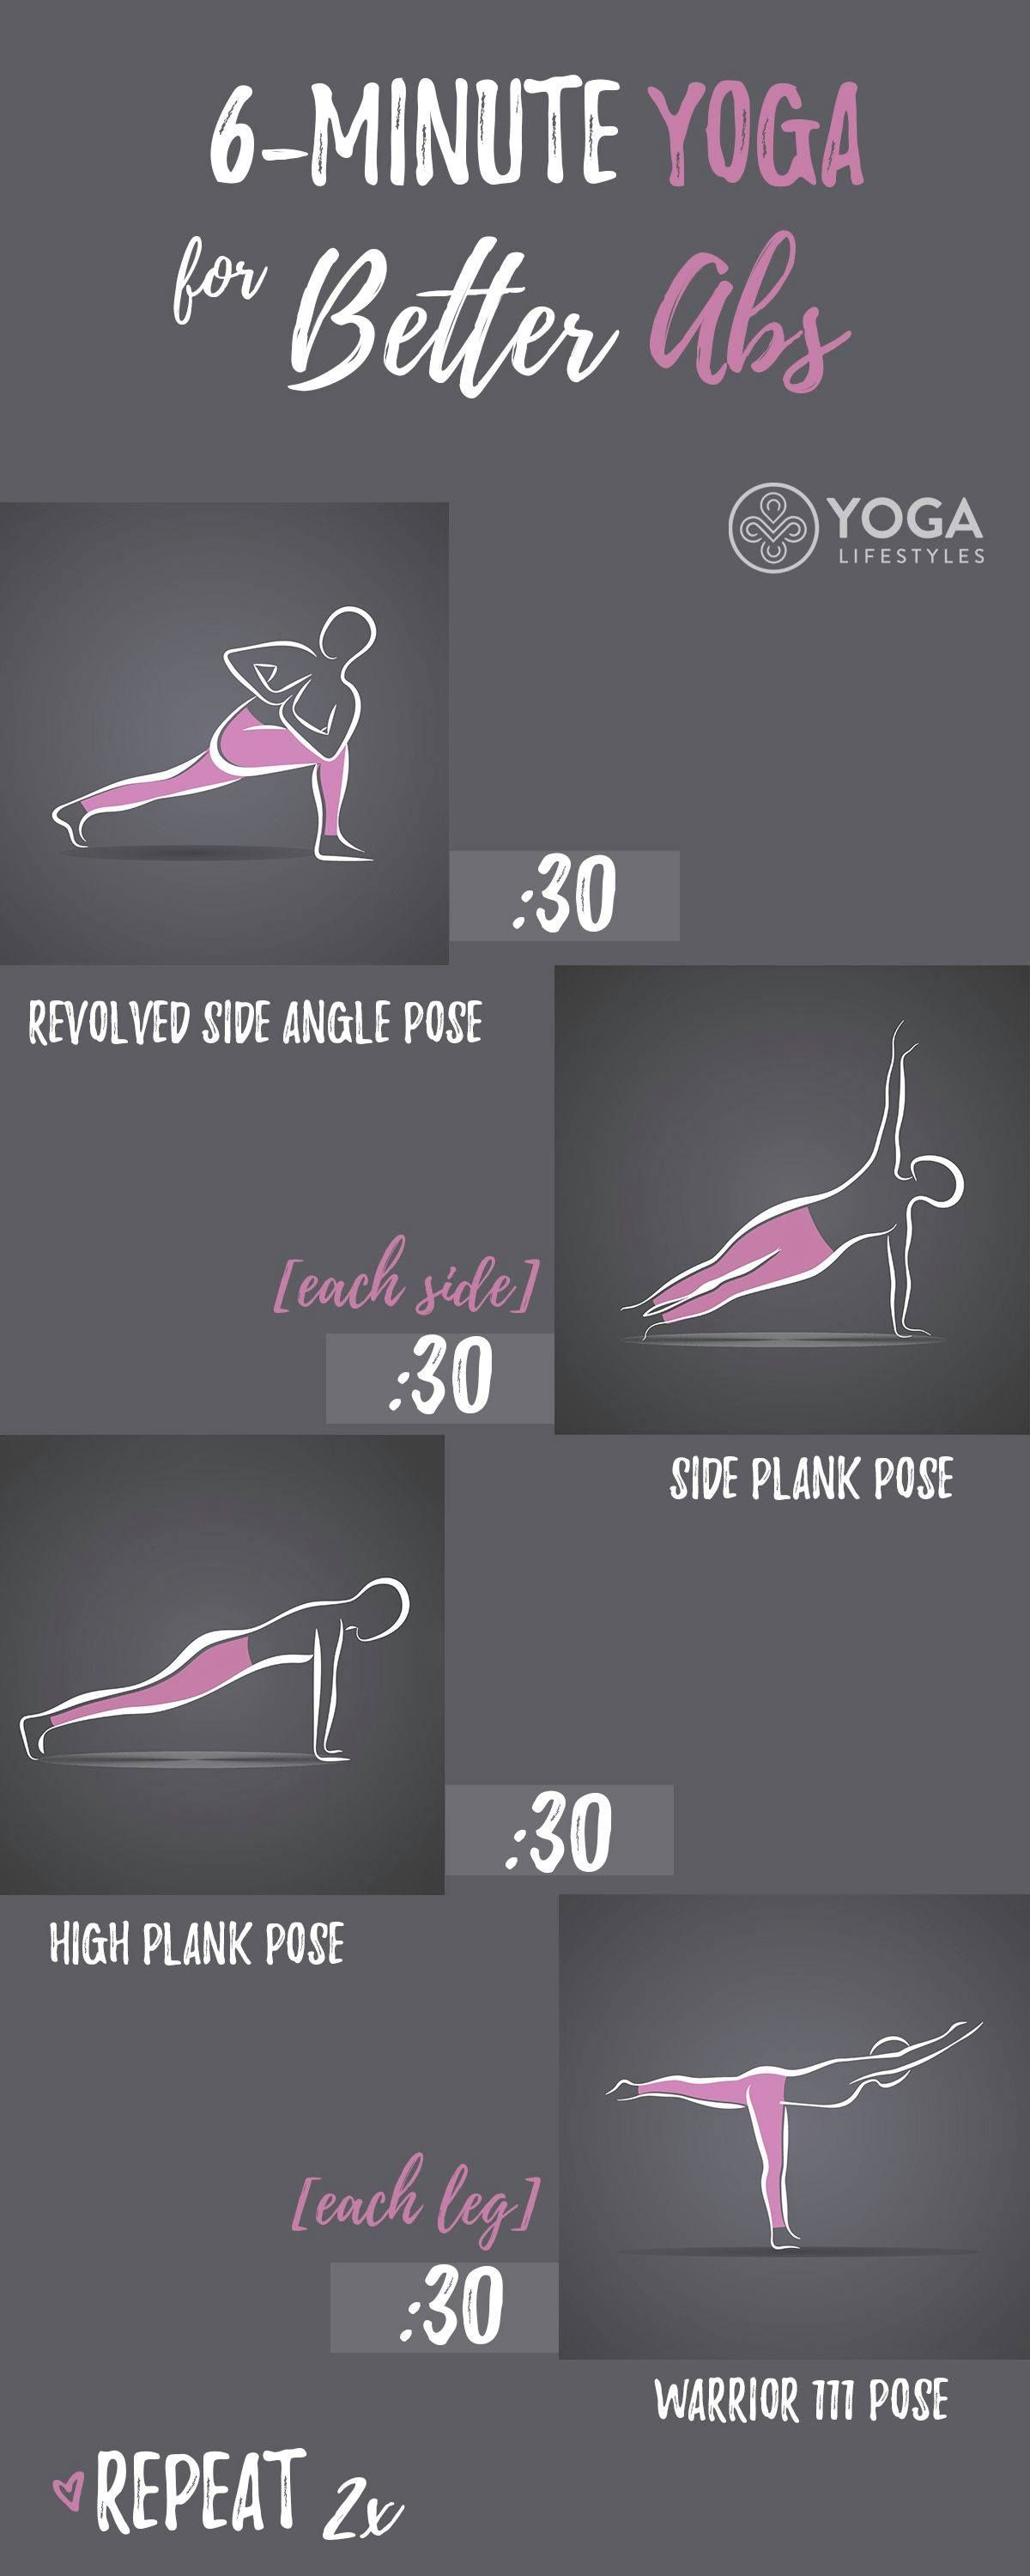 Pin On The Best Of Yogalifestyles Com